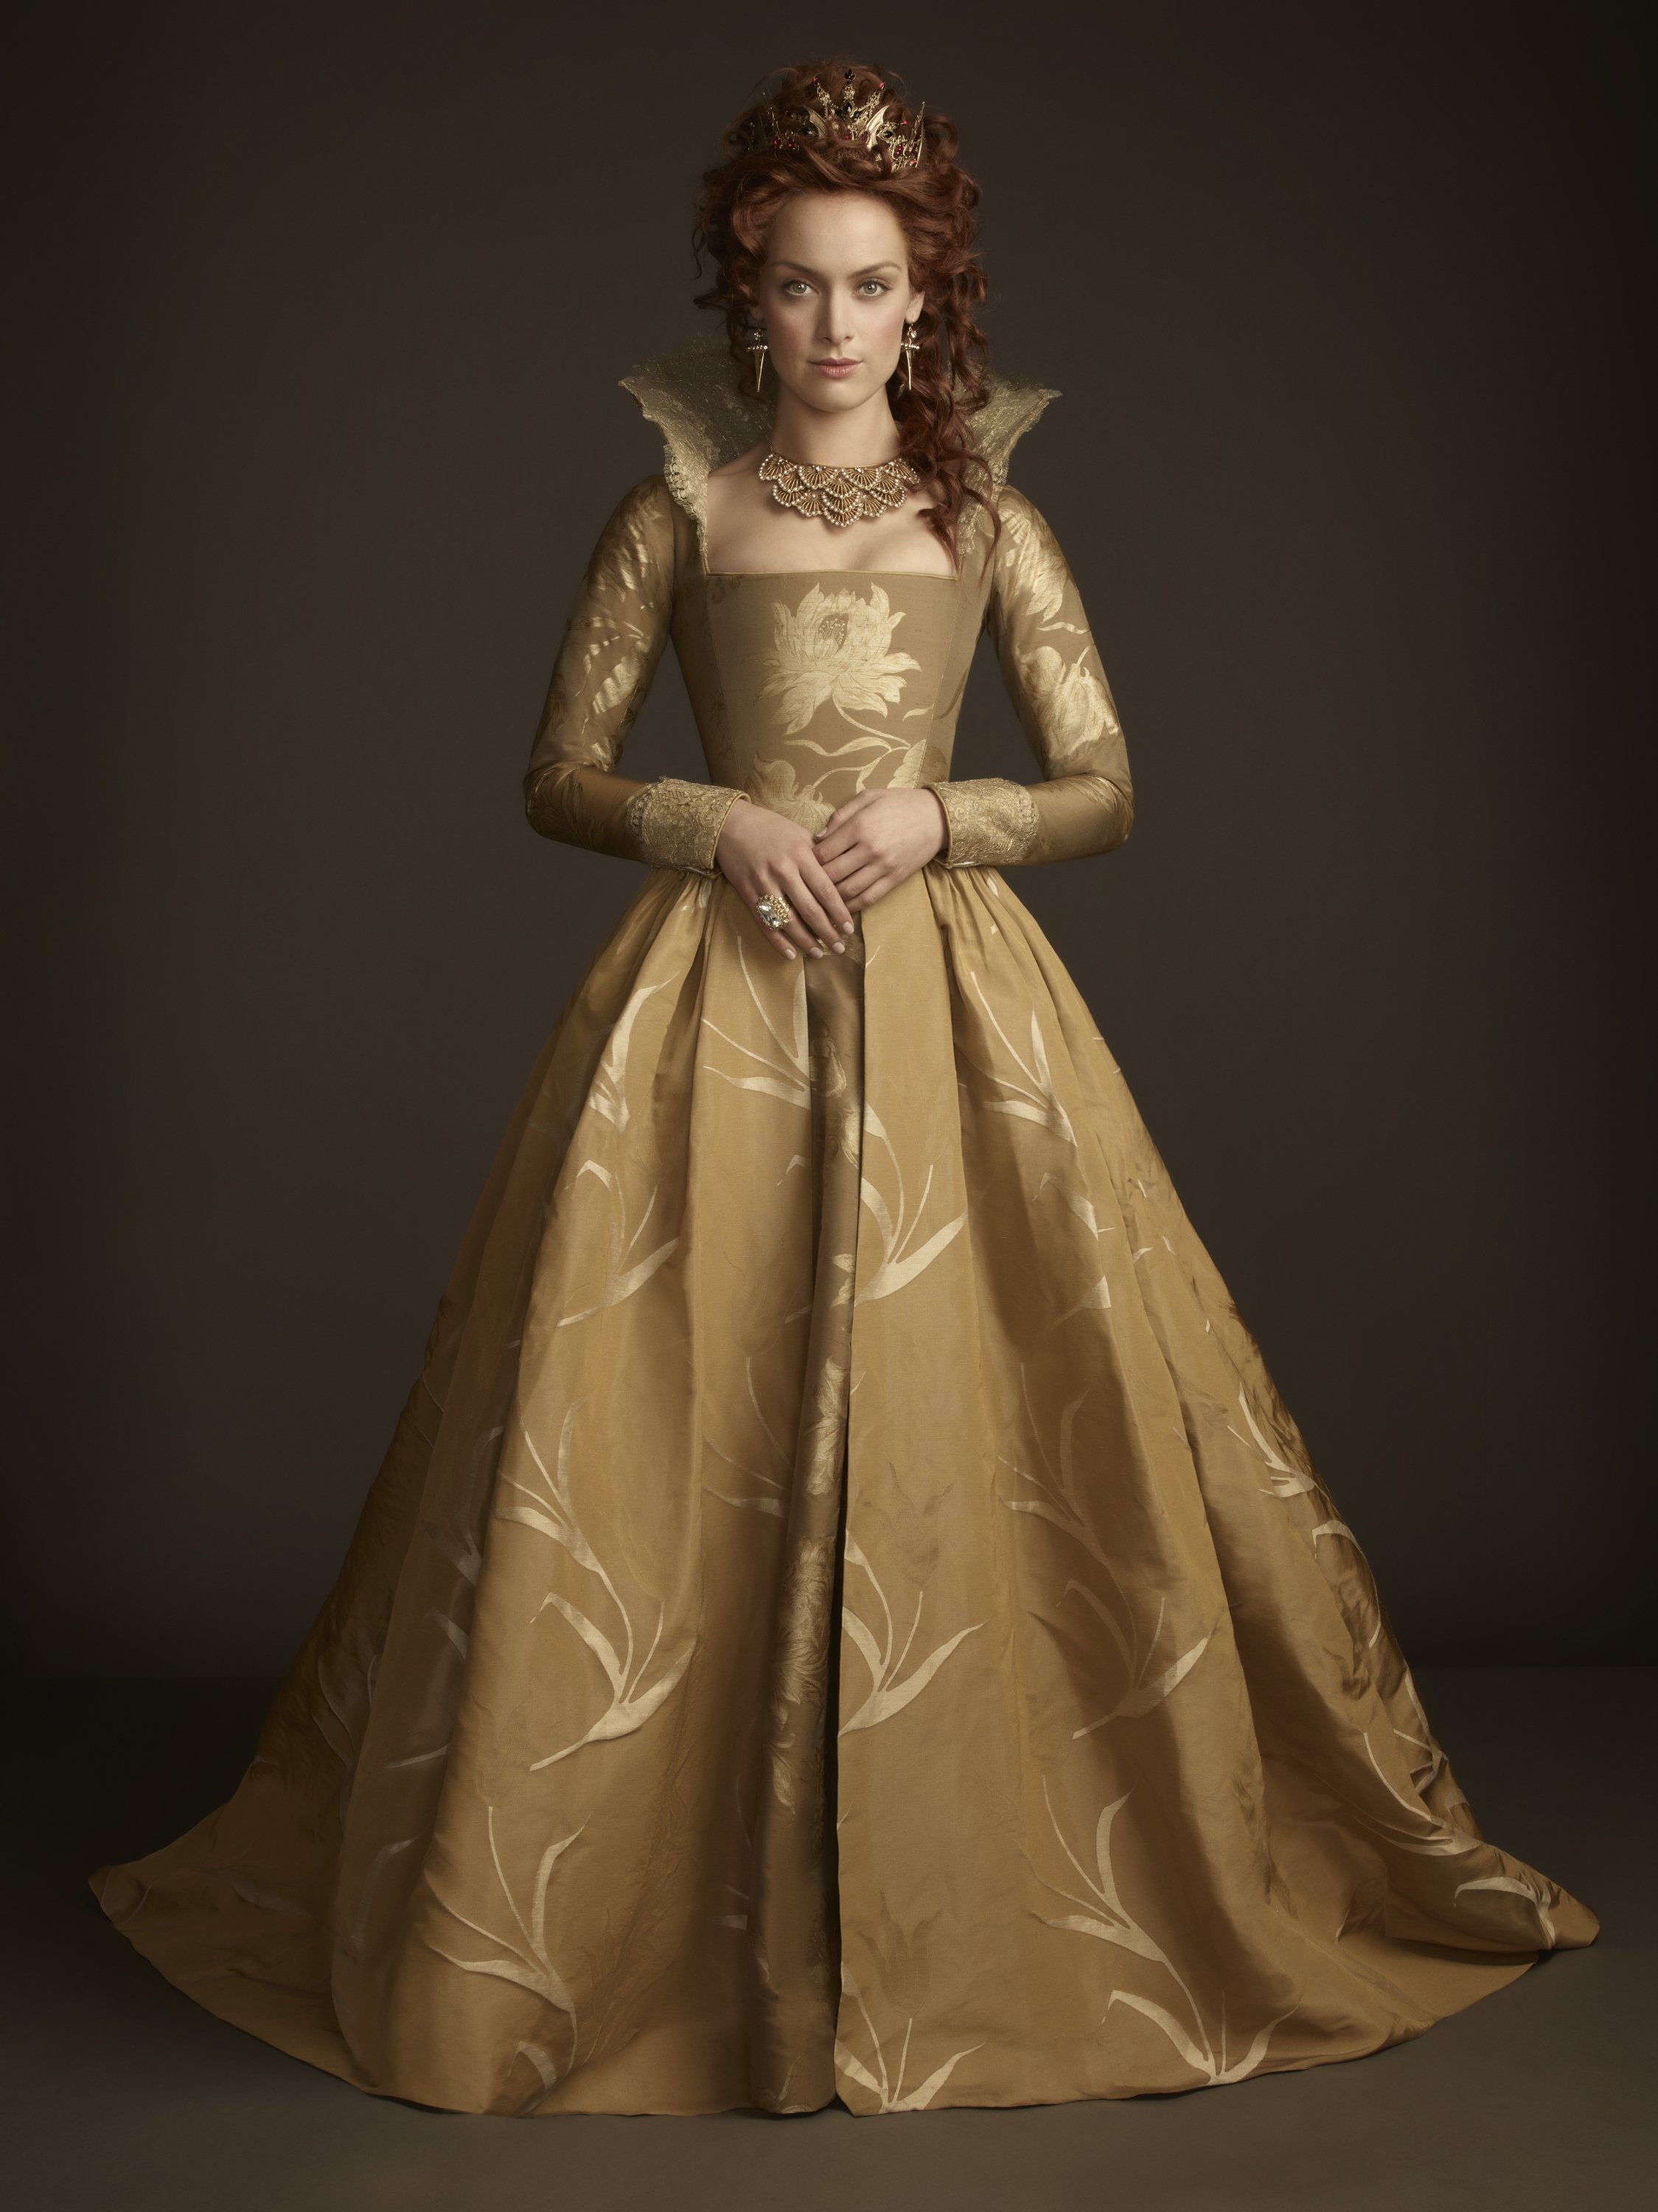 Reign Season 3 퀸 Elizabeth of England portrait